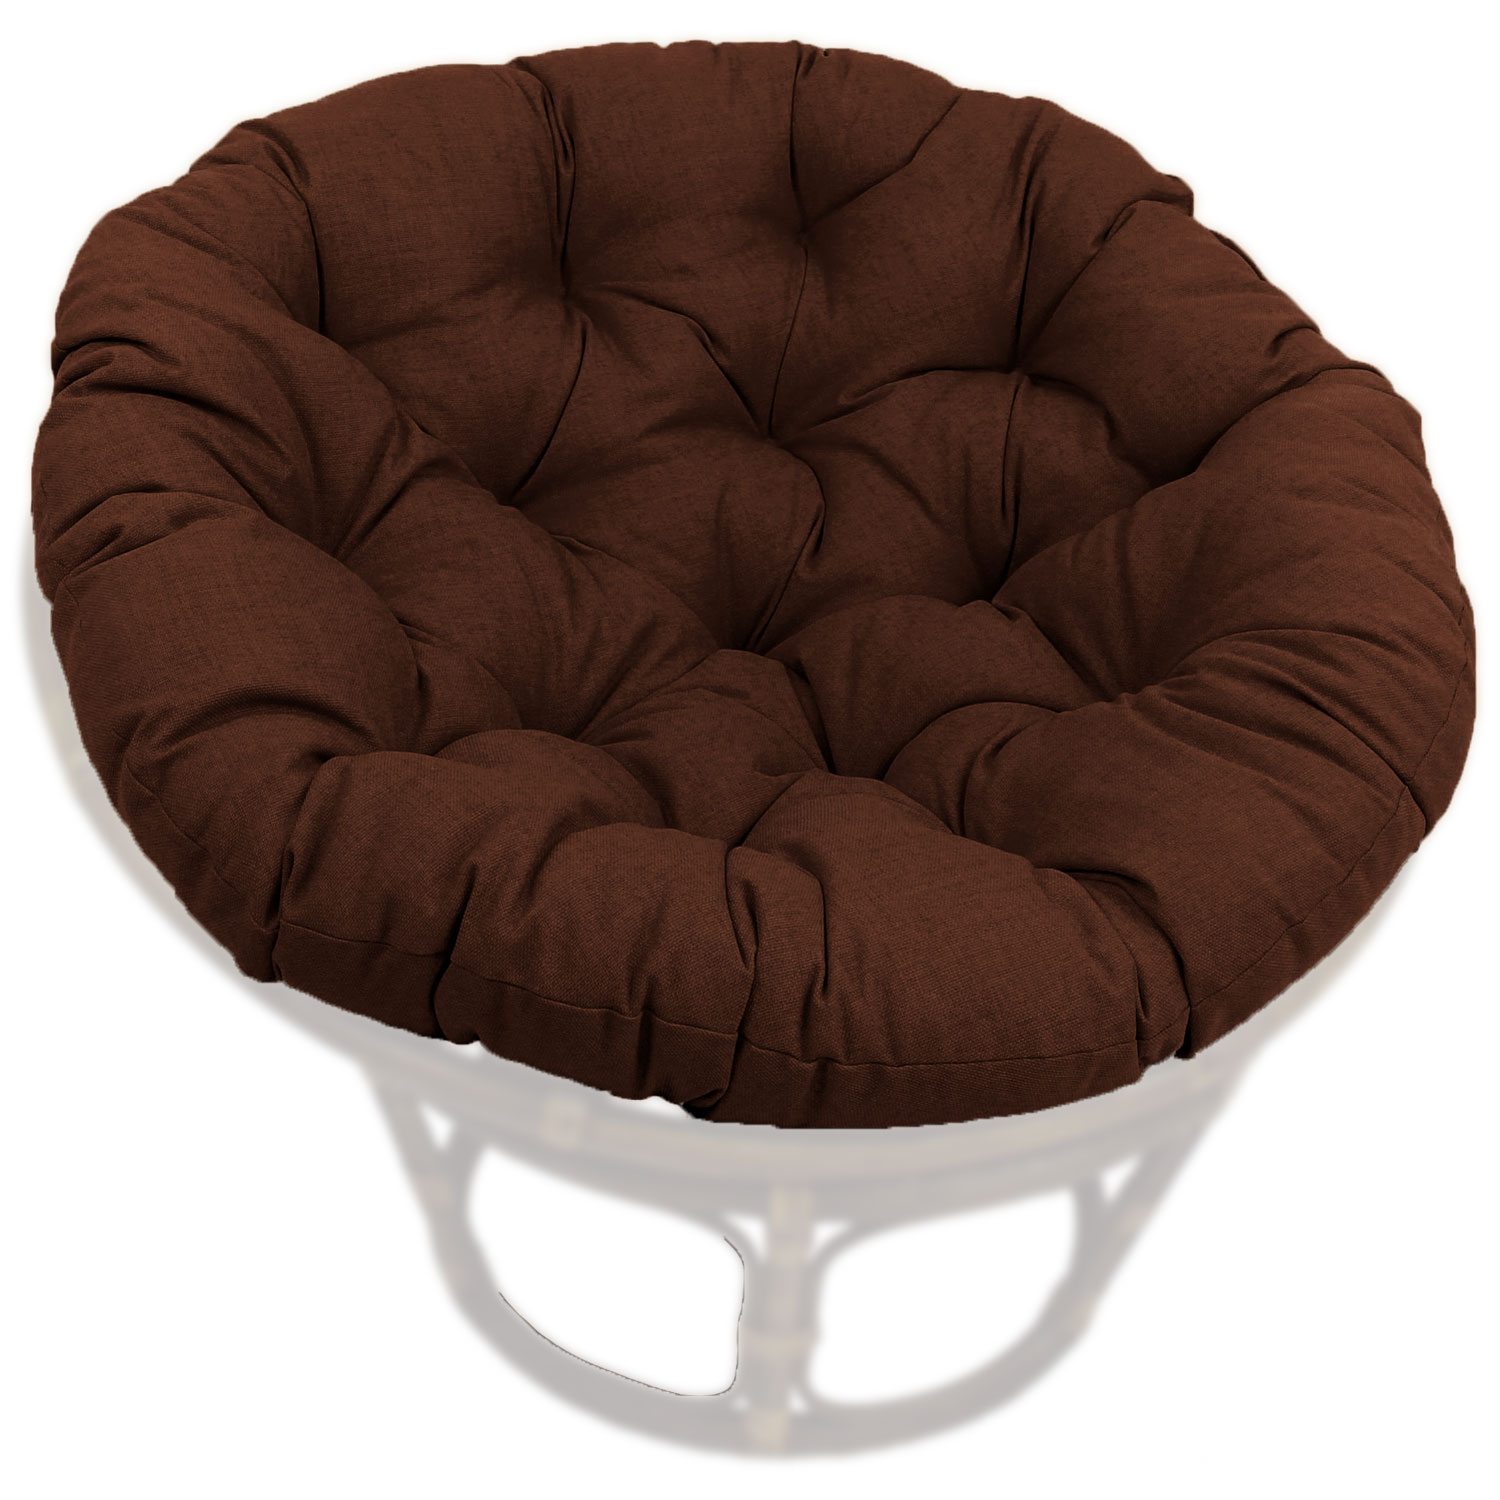 46 Inch Outdoor Fabric Tufted Papasan Cushion